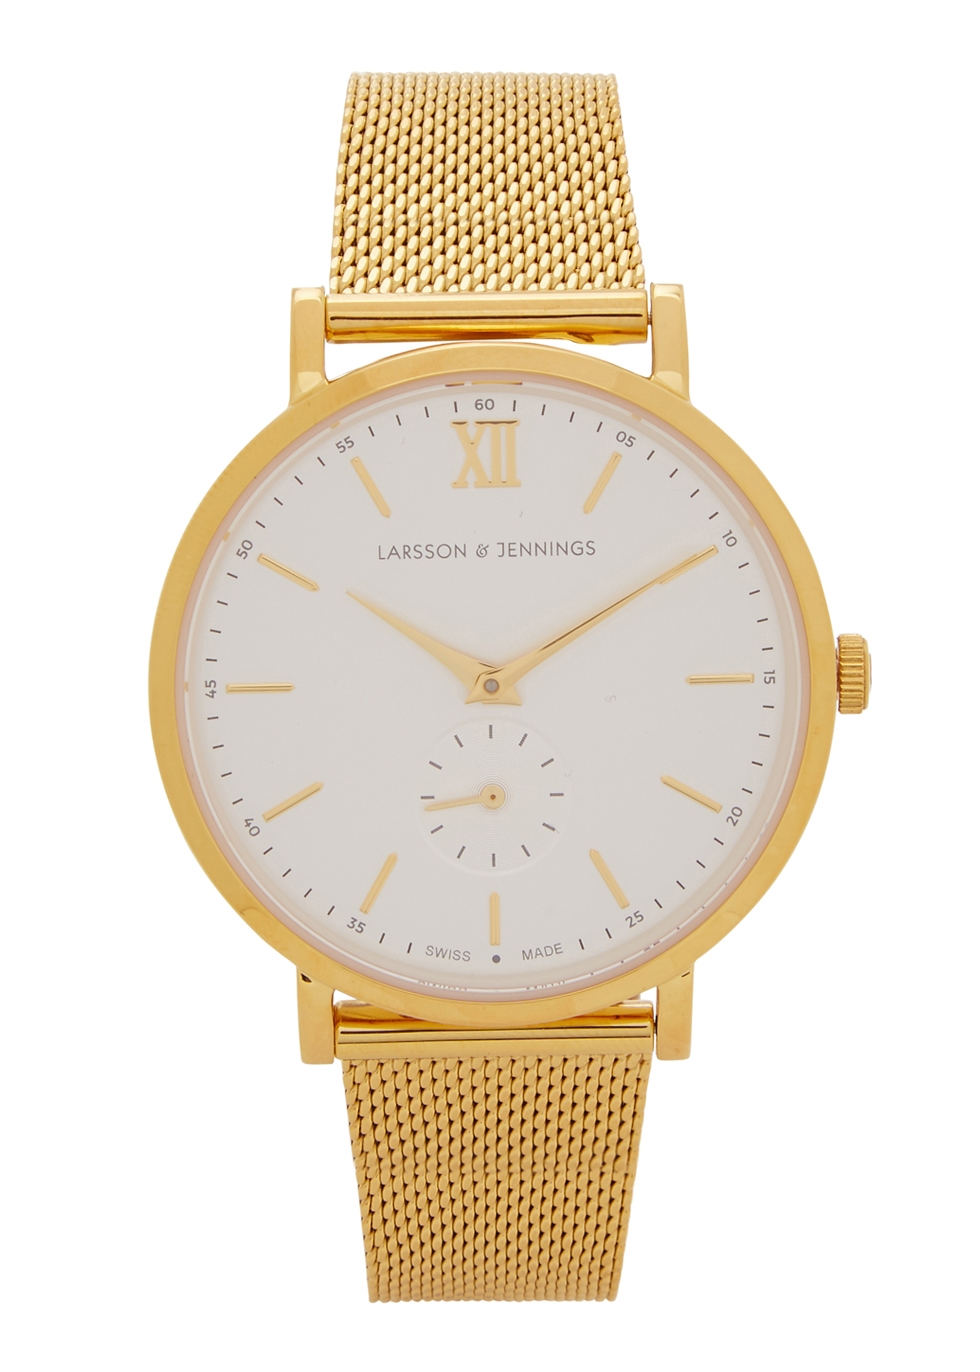 Jura 23ct gold-plated stainless steel watch - Larsson & Jennings